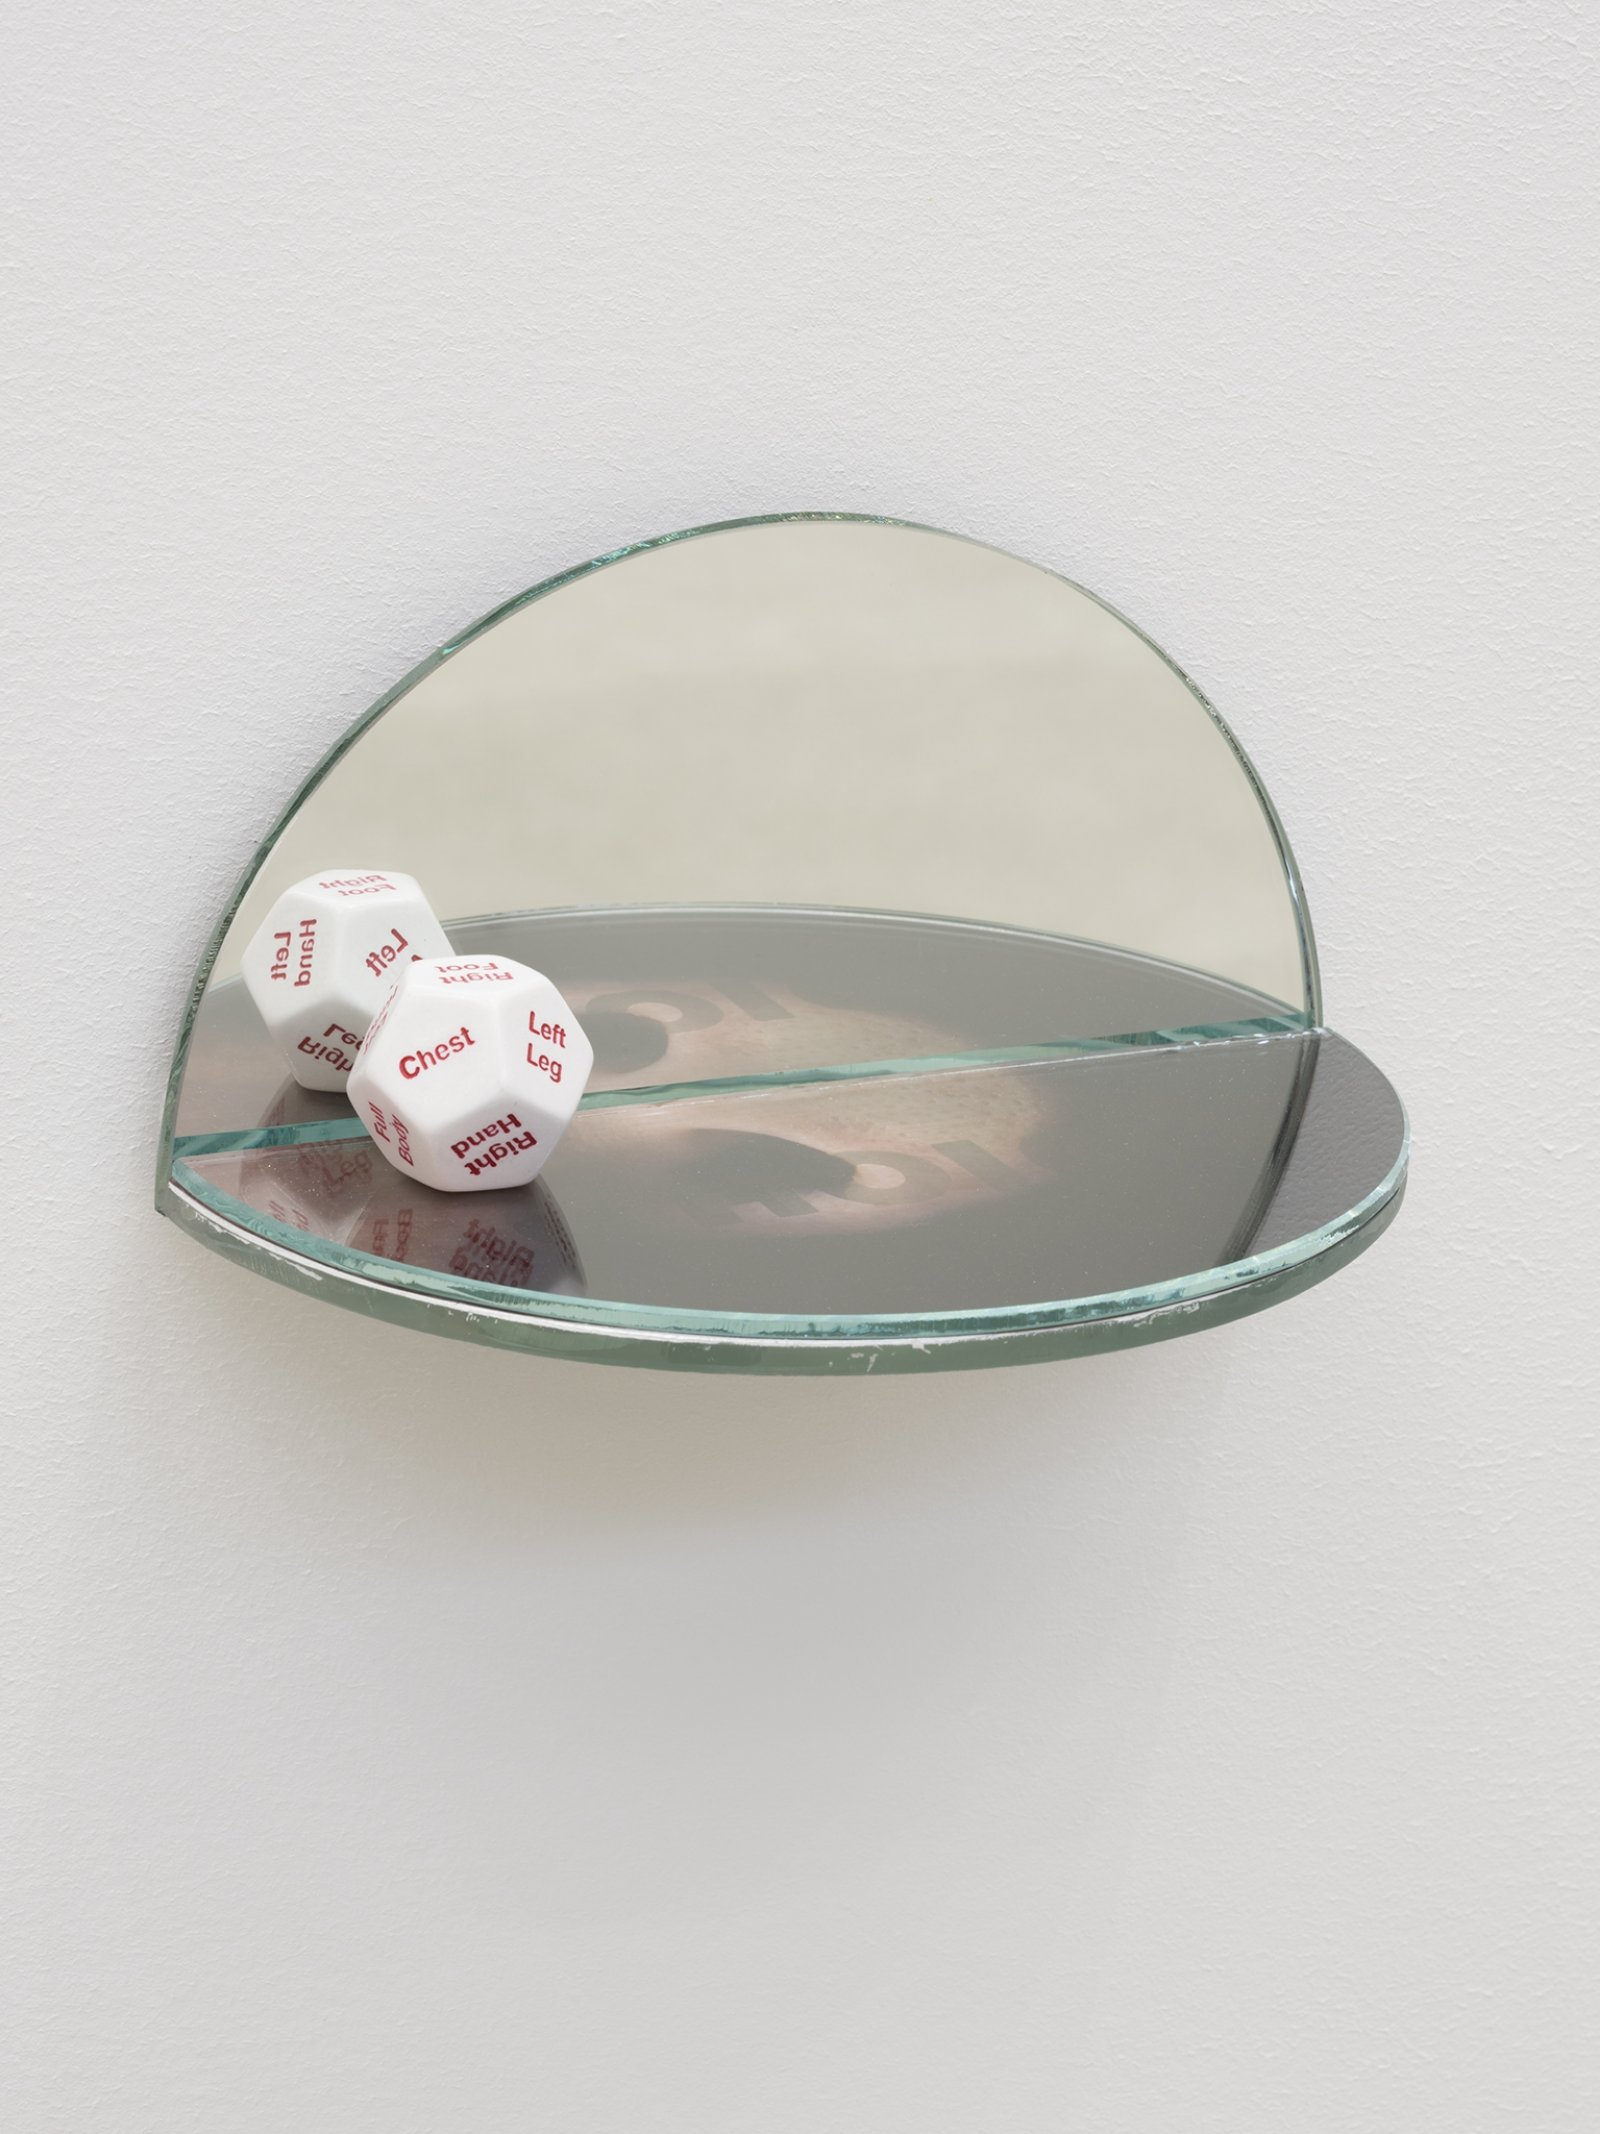 Julia Feyrer, The Ambidextrous Universe: smelling, 2018, mirror, liquid mirror, glass, fujiclear transparency, 12-sided die, 4 x 4 x 7 in. (9 x 9 x 18 cm)